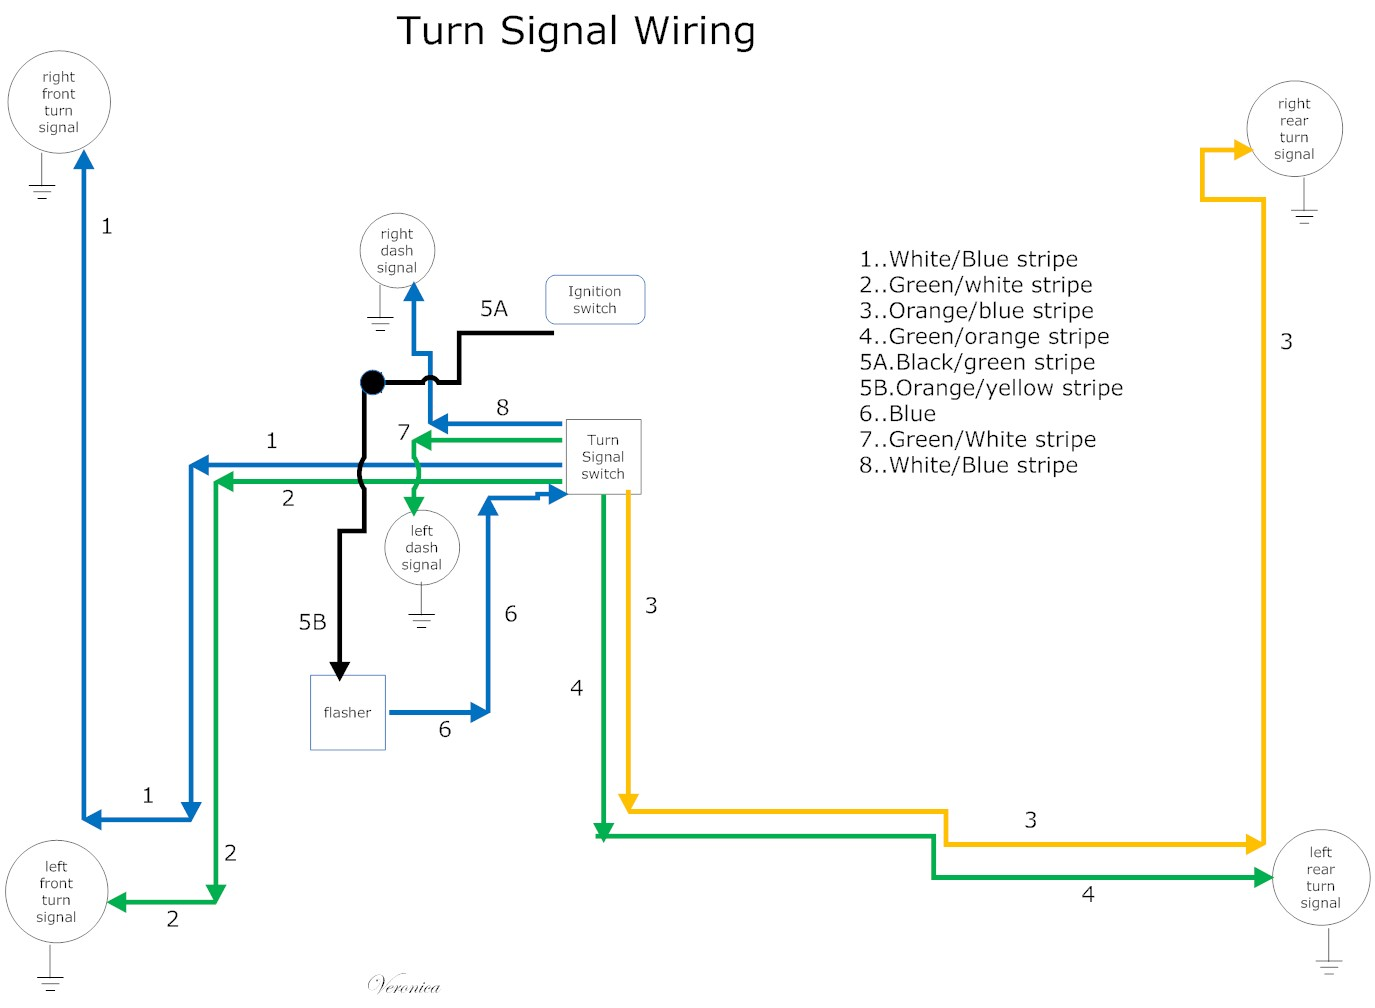 Turn+signal+Wiring turn signal wiring diagram turn signal wiring diagram 05 victory golf cart turn signal wiring diagram at reclaimingppi.co